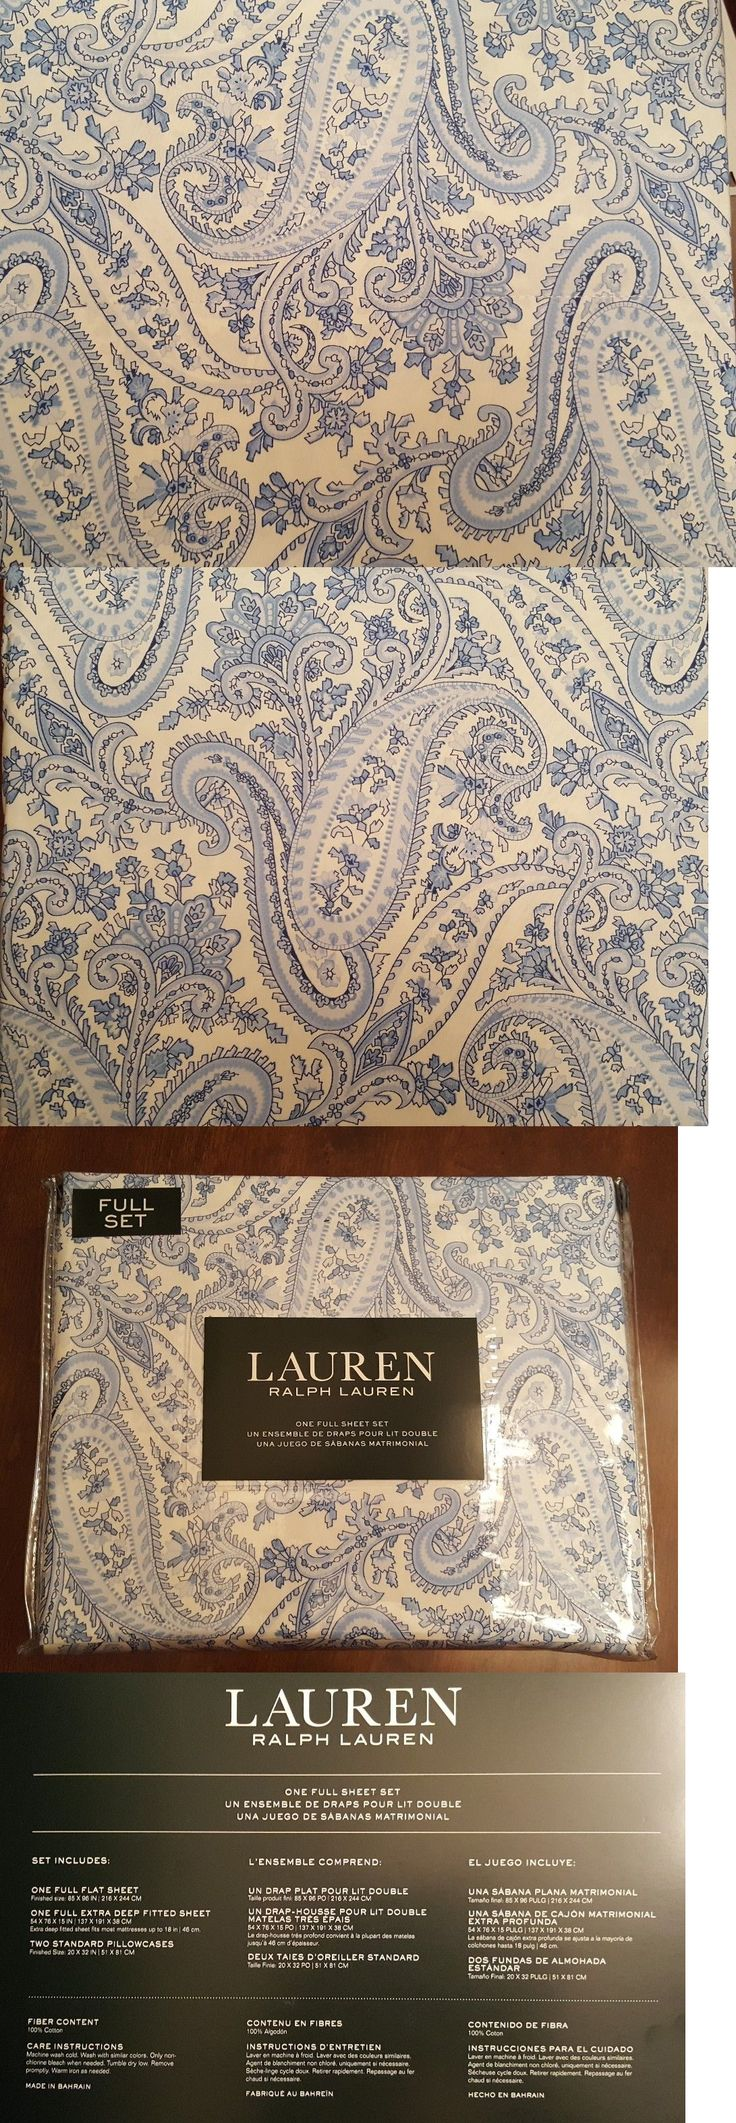 Sheets and Pillowcases 20460: Ralph Lauren - 4Pc Sheet Set - White W Blue Paisley - 100% Cotton -> BUY IT NOW ONLY: $69.99 on eBay!